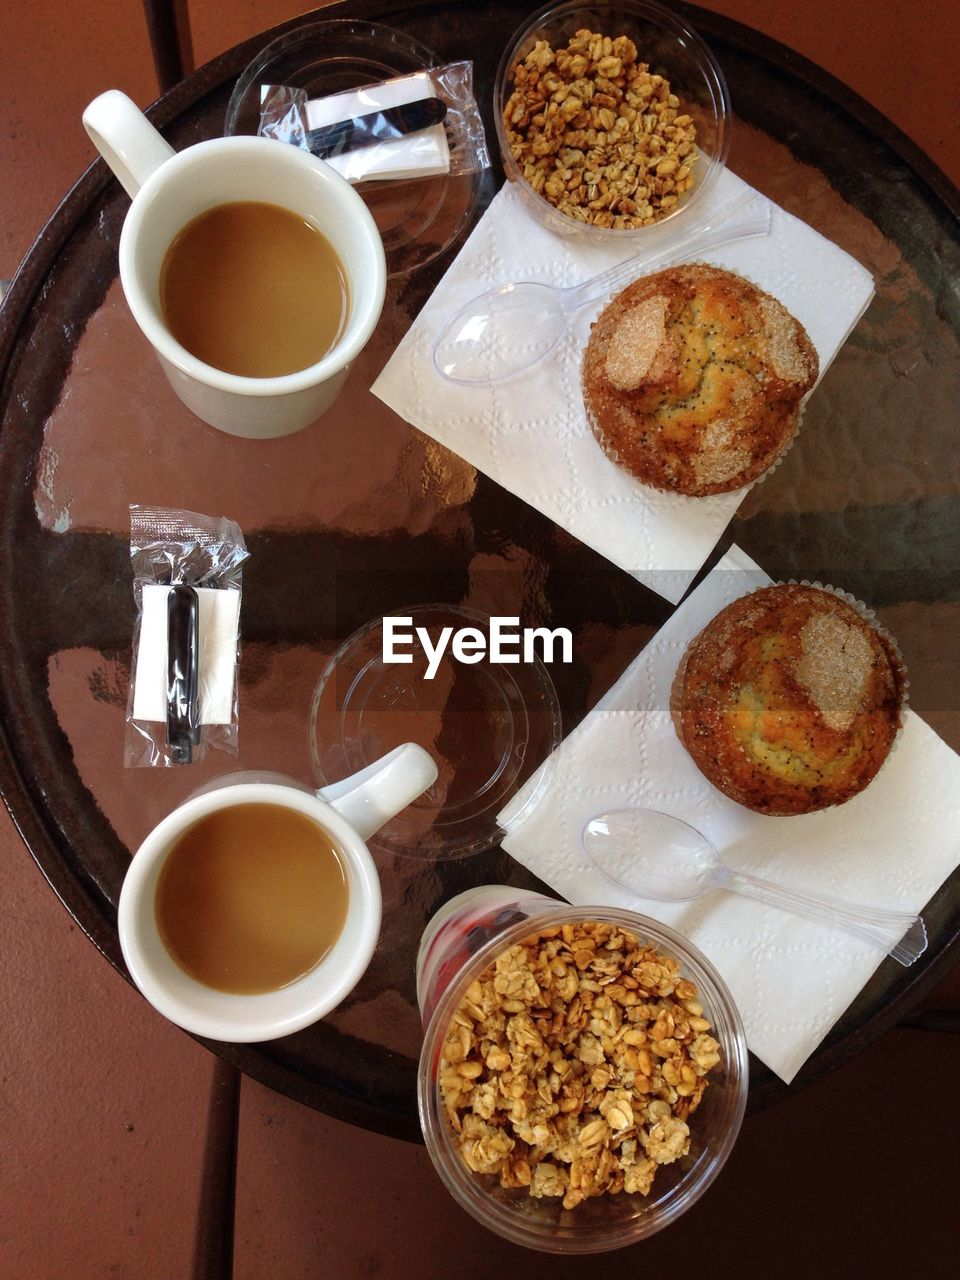 Top view image of coffee cups, baked goods and cereals